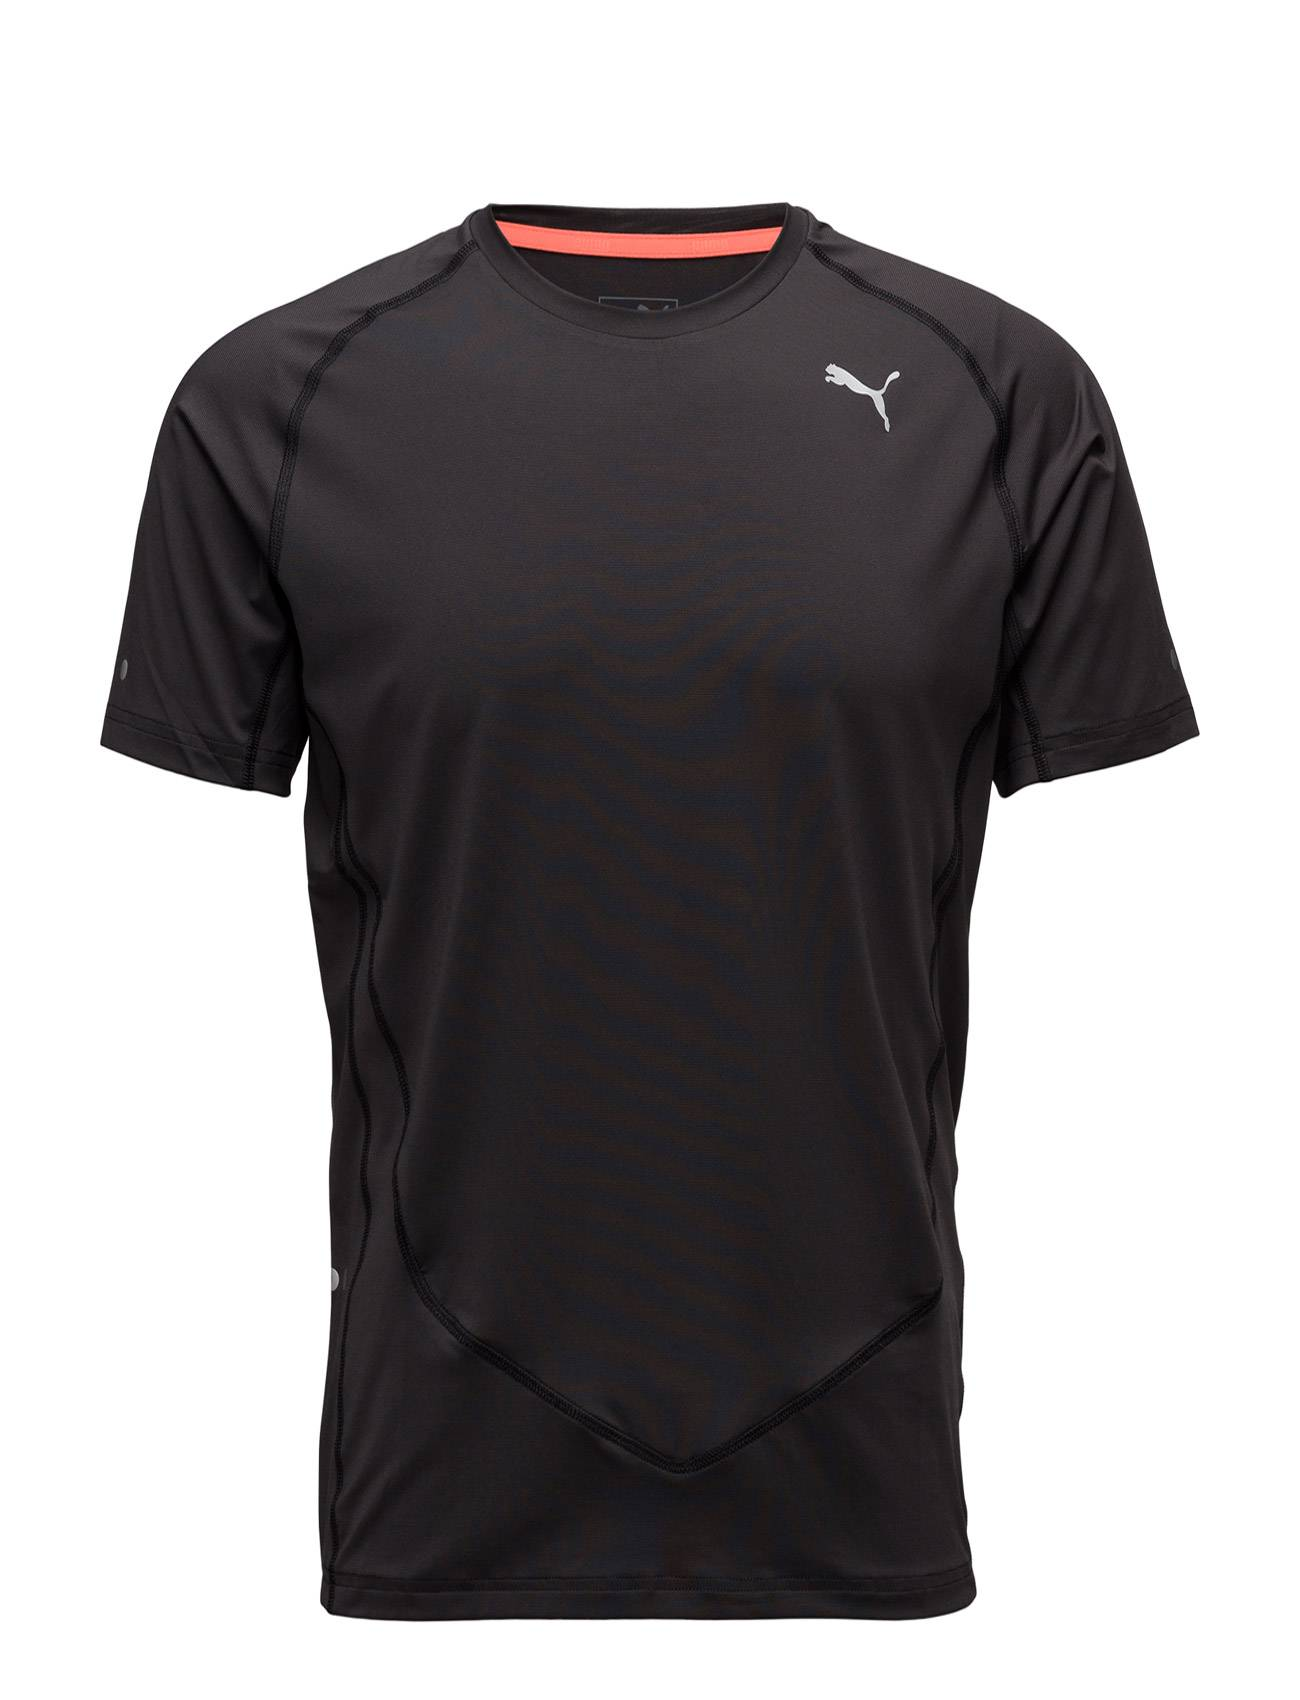 PUMA SPORT Faster Than You S/S Tee